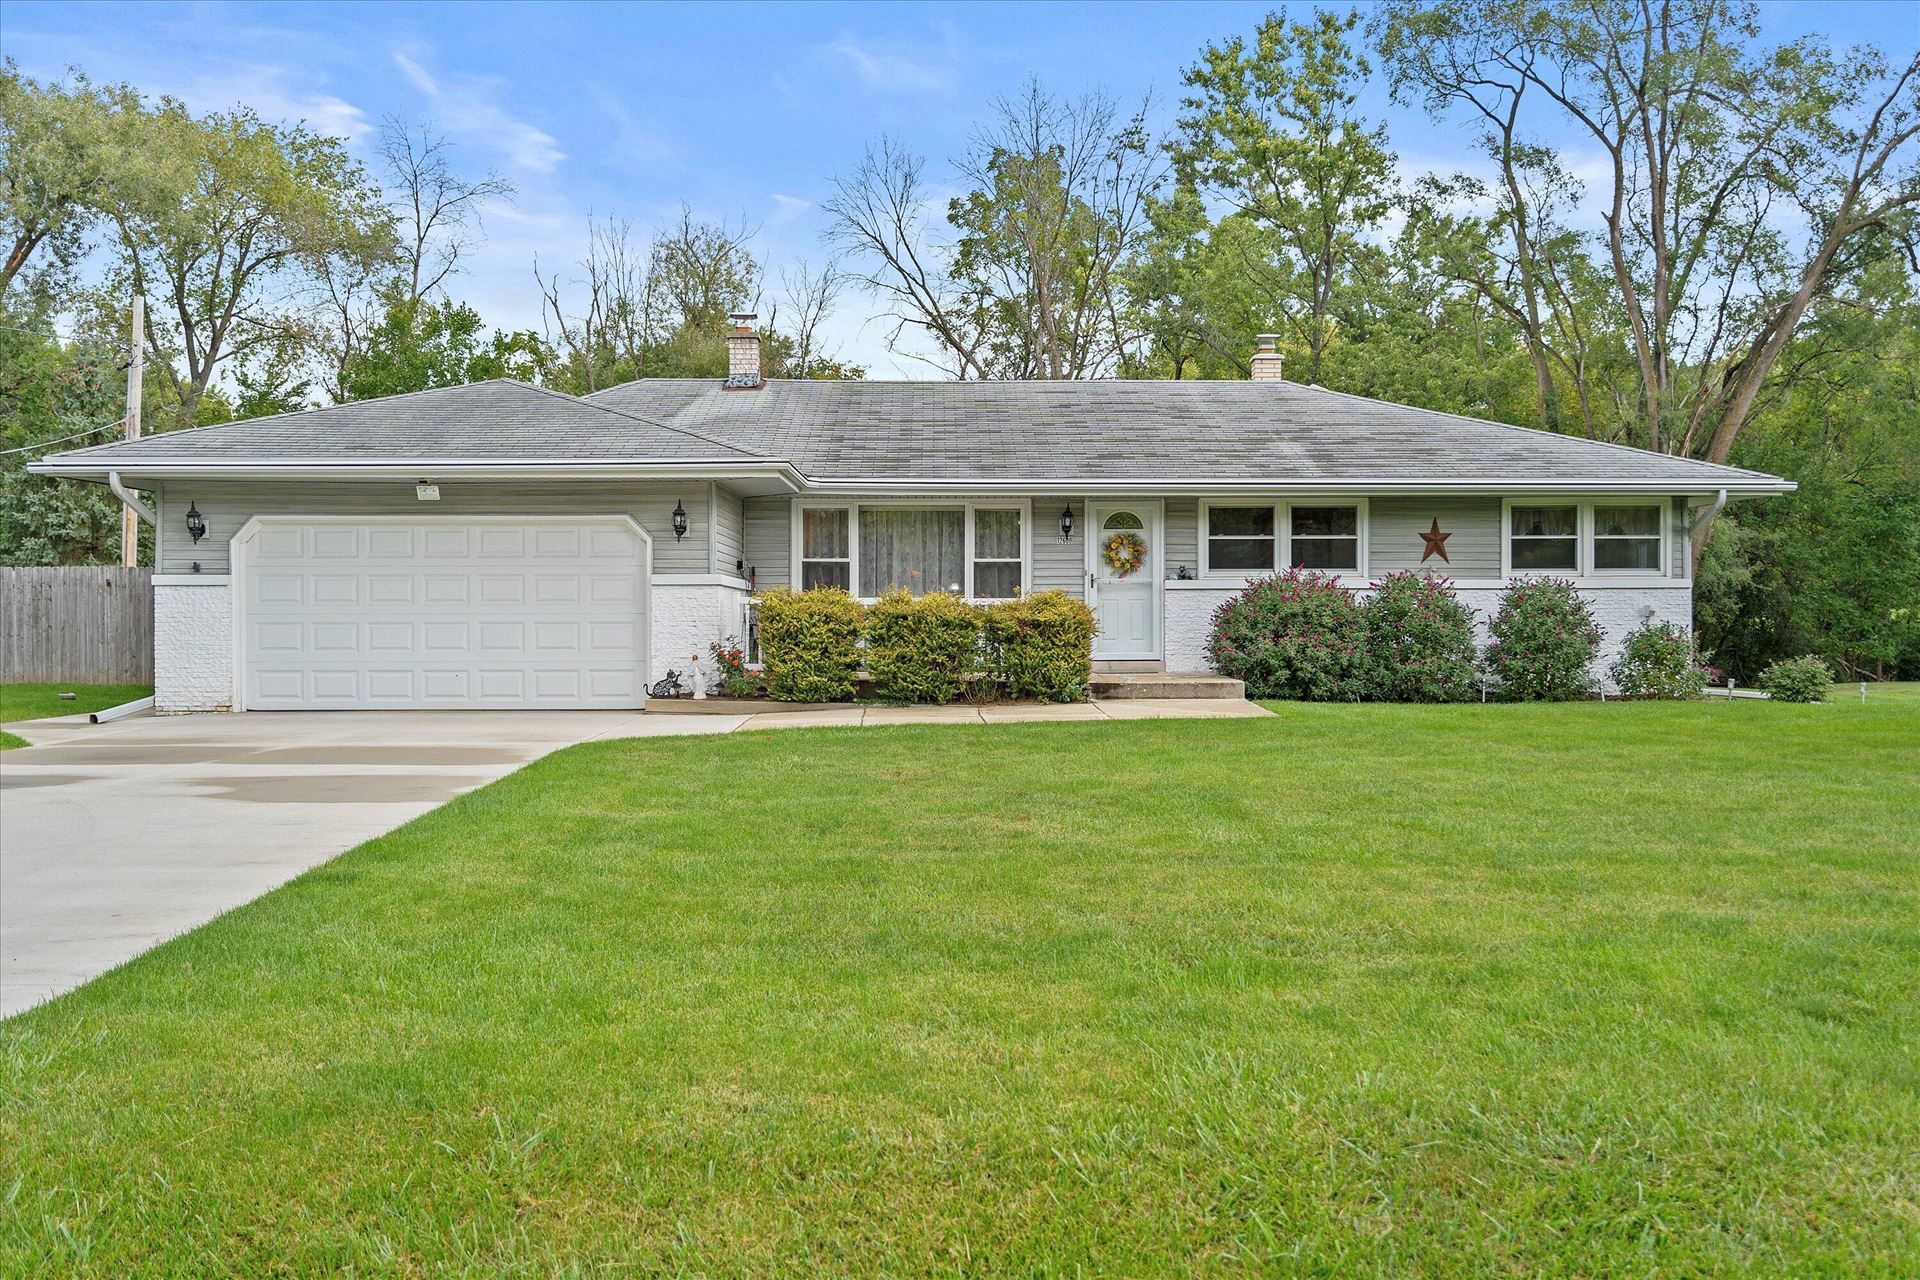 12600 W Cleveland Ave, New Berlin, WI 53151 - #: 1764801